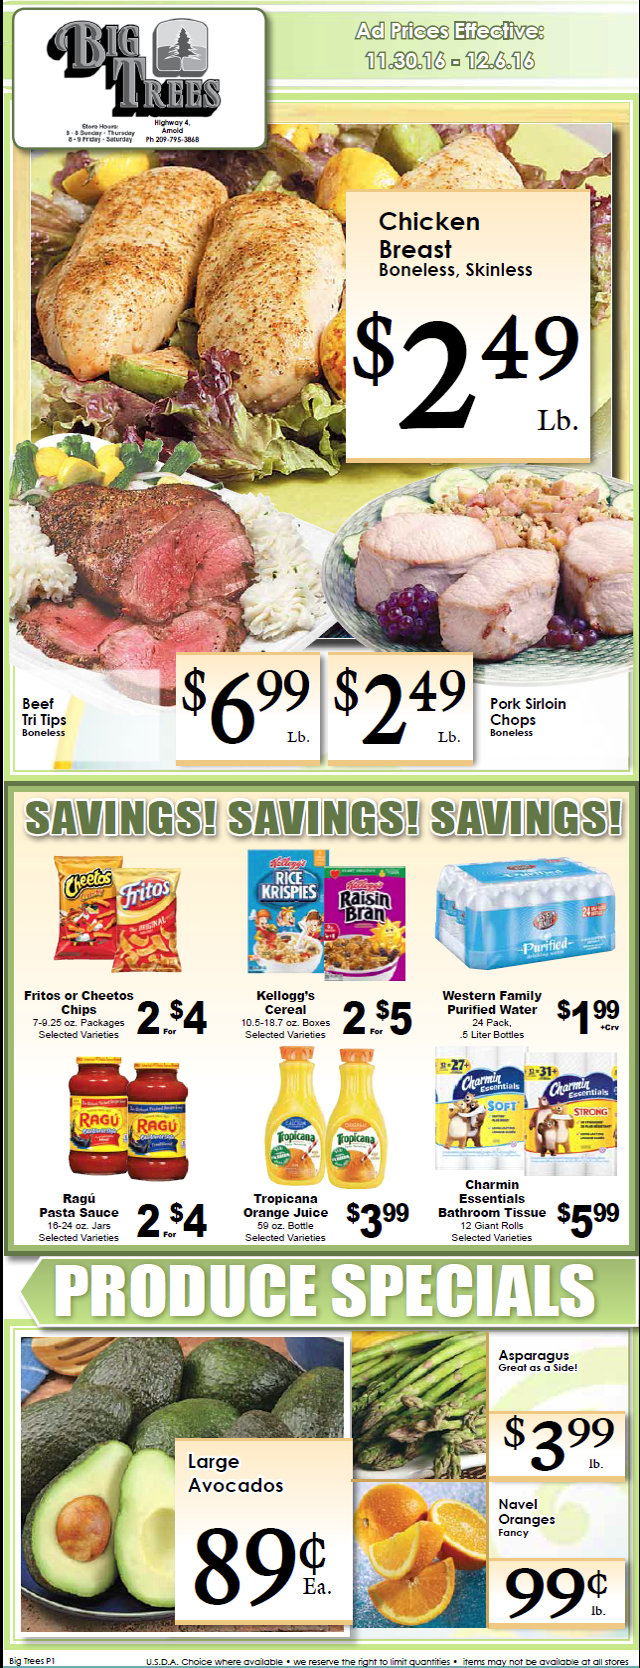 Big Trees Market Weekly Ad & Specials Through December 6th